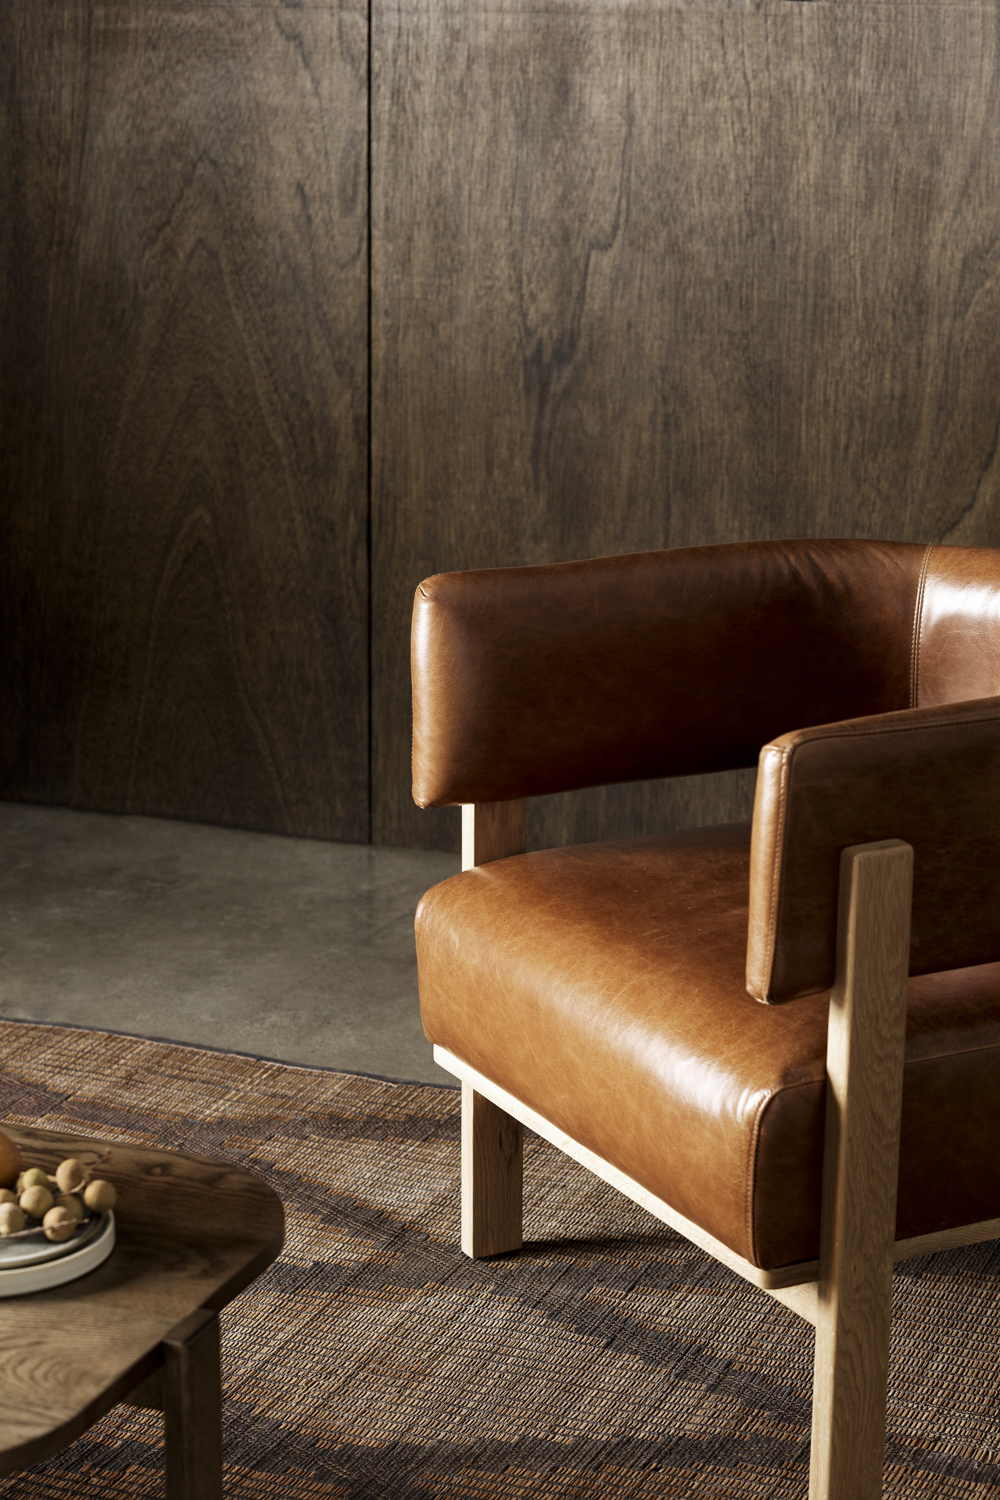 Gallery Of Flo Armchair By Anaca Studio Local Australian Furniture Design Collingwood, Melbourne Image 13